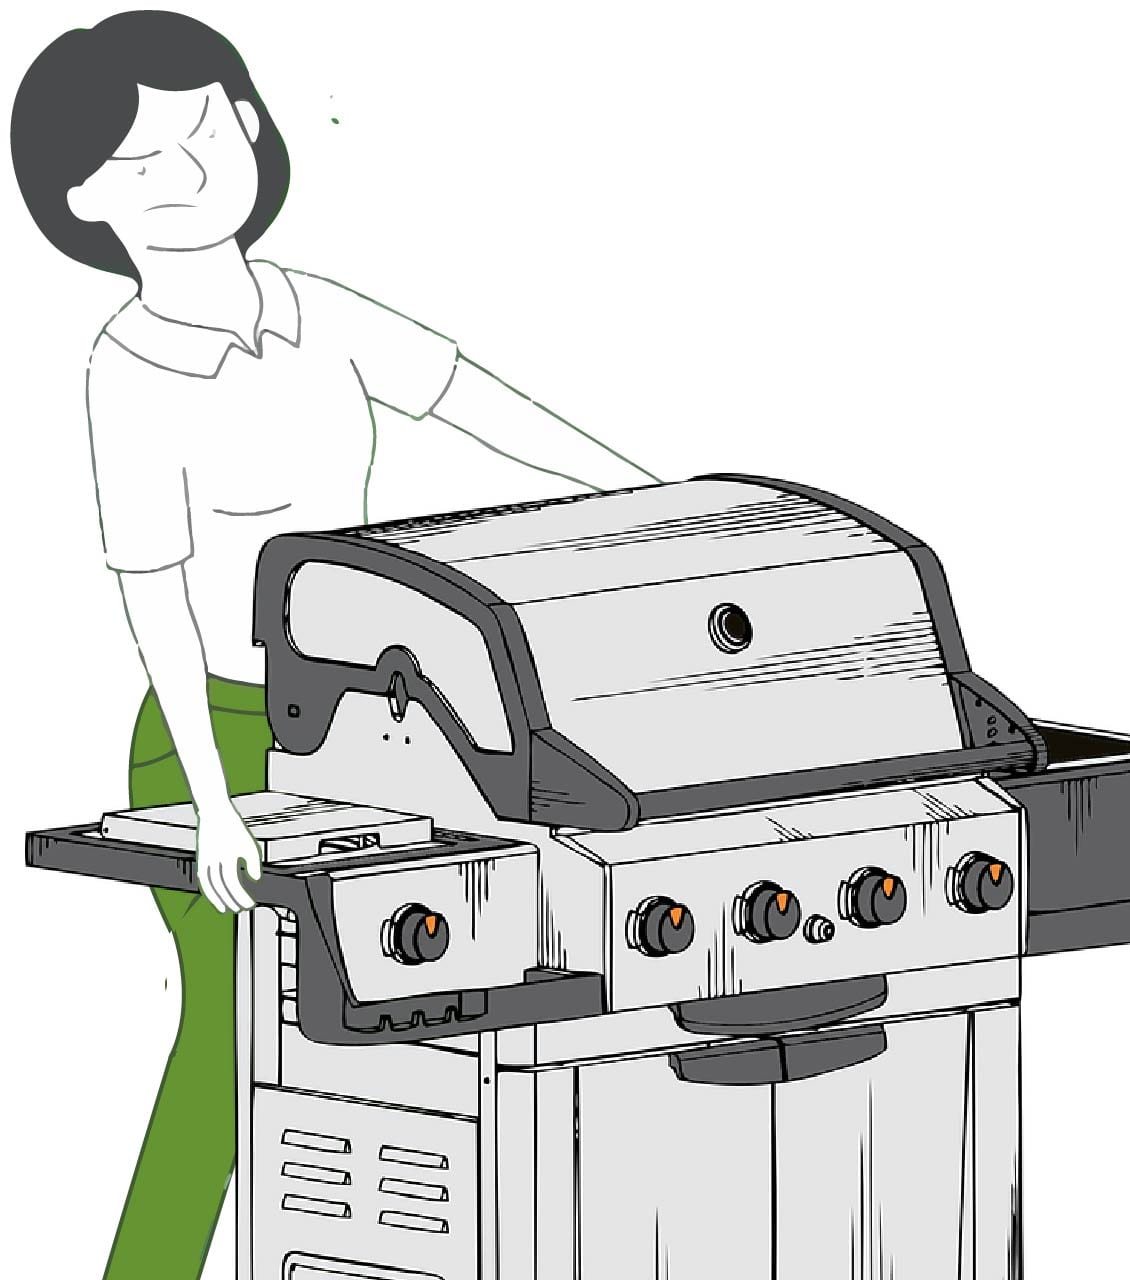 Reliable Boston Grill Removal & Disposal Services